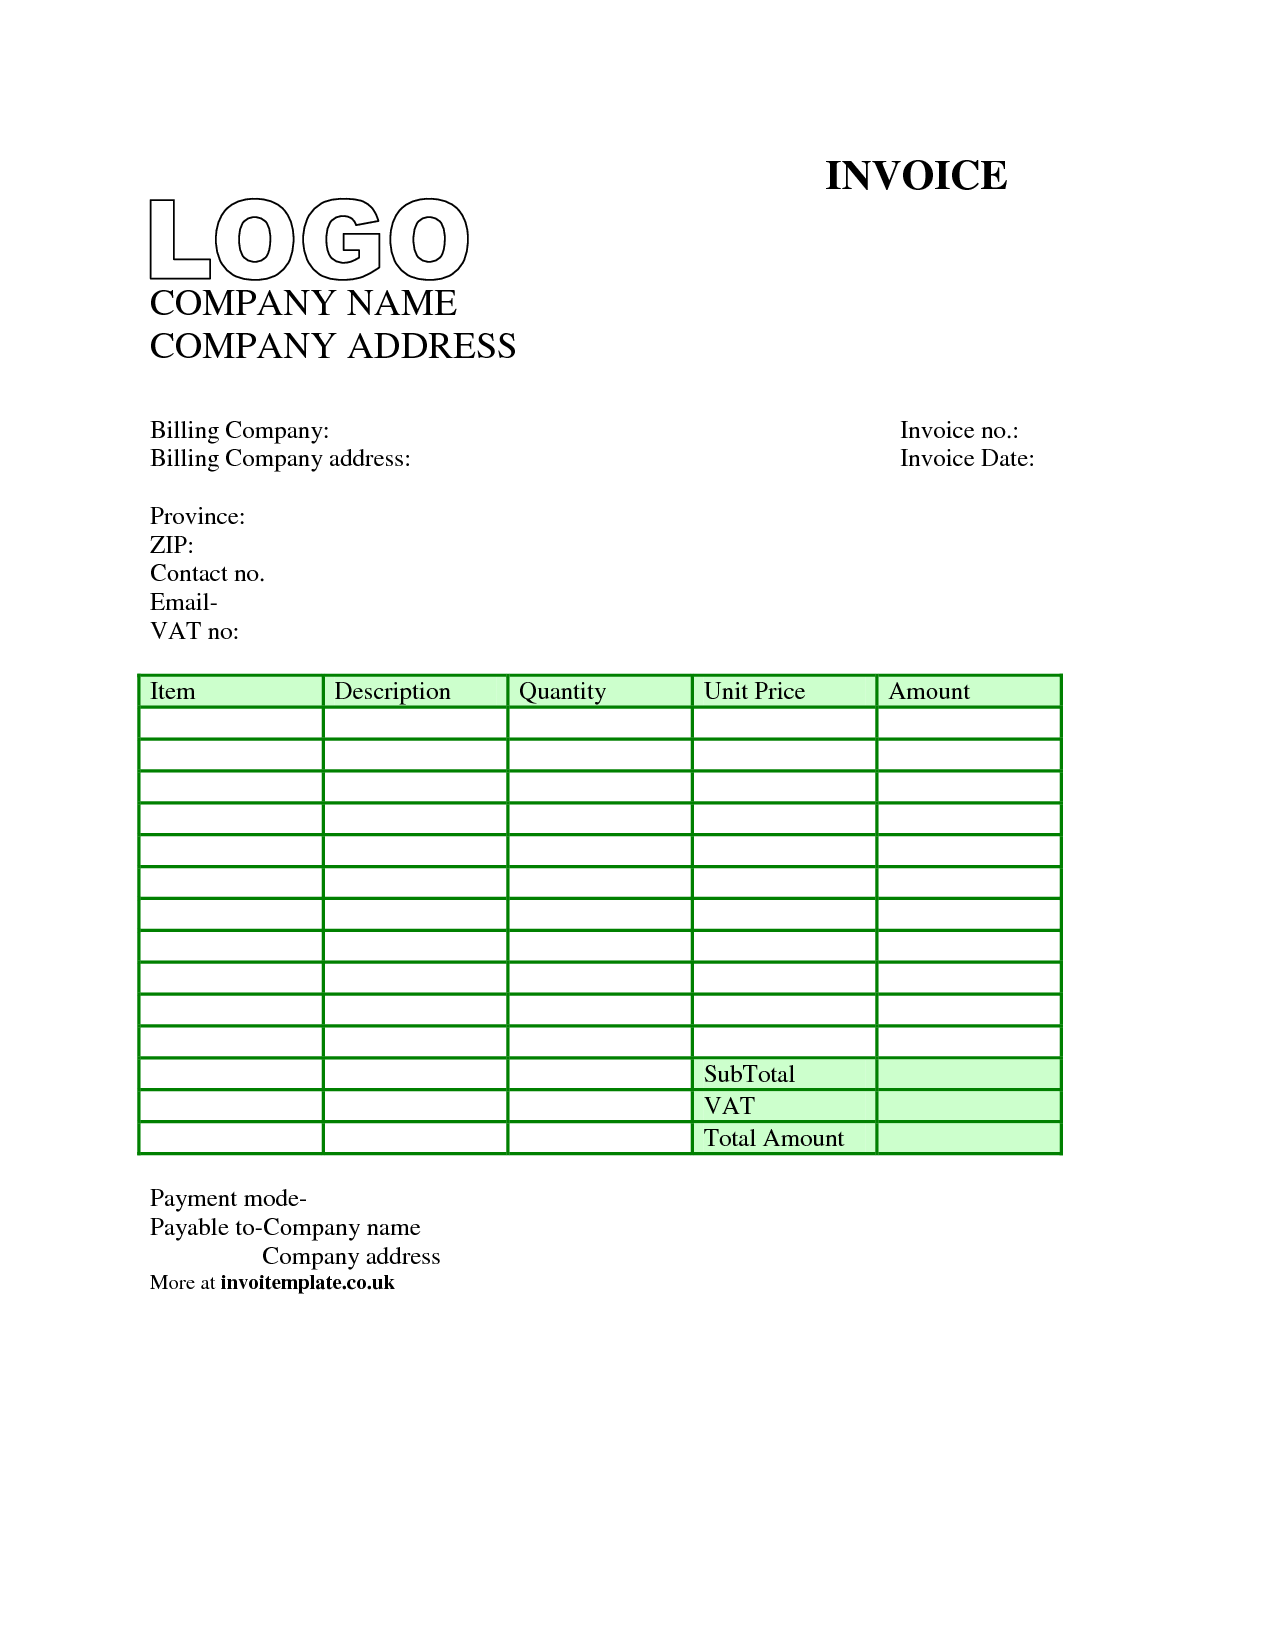 invoice template uk word | invoice example, Invoice templates